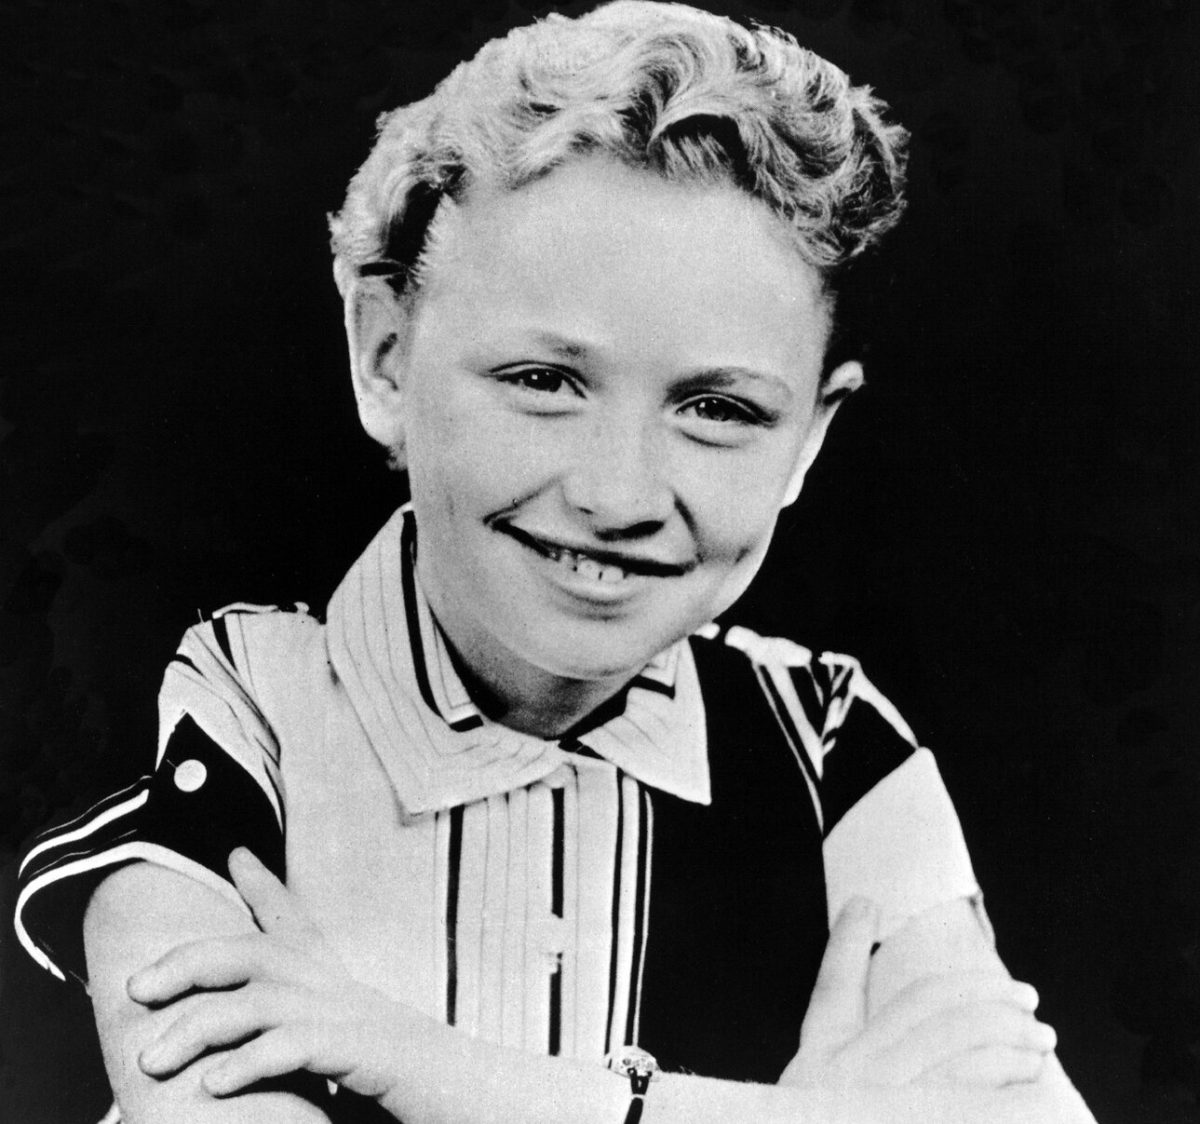 Dolly Parton poses for a portrait as a child in 1955. The photo is black and white. She wears short hair and a collared shirt.